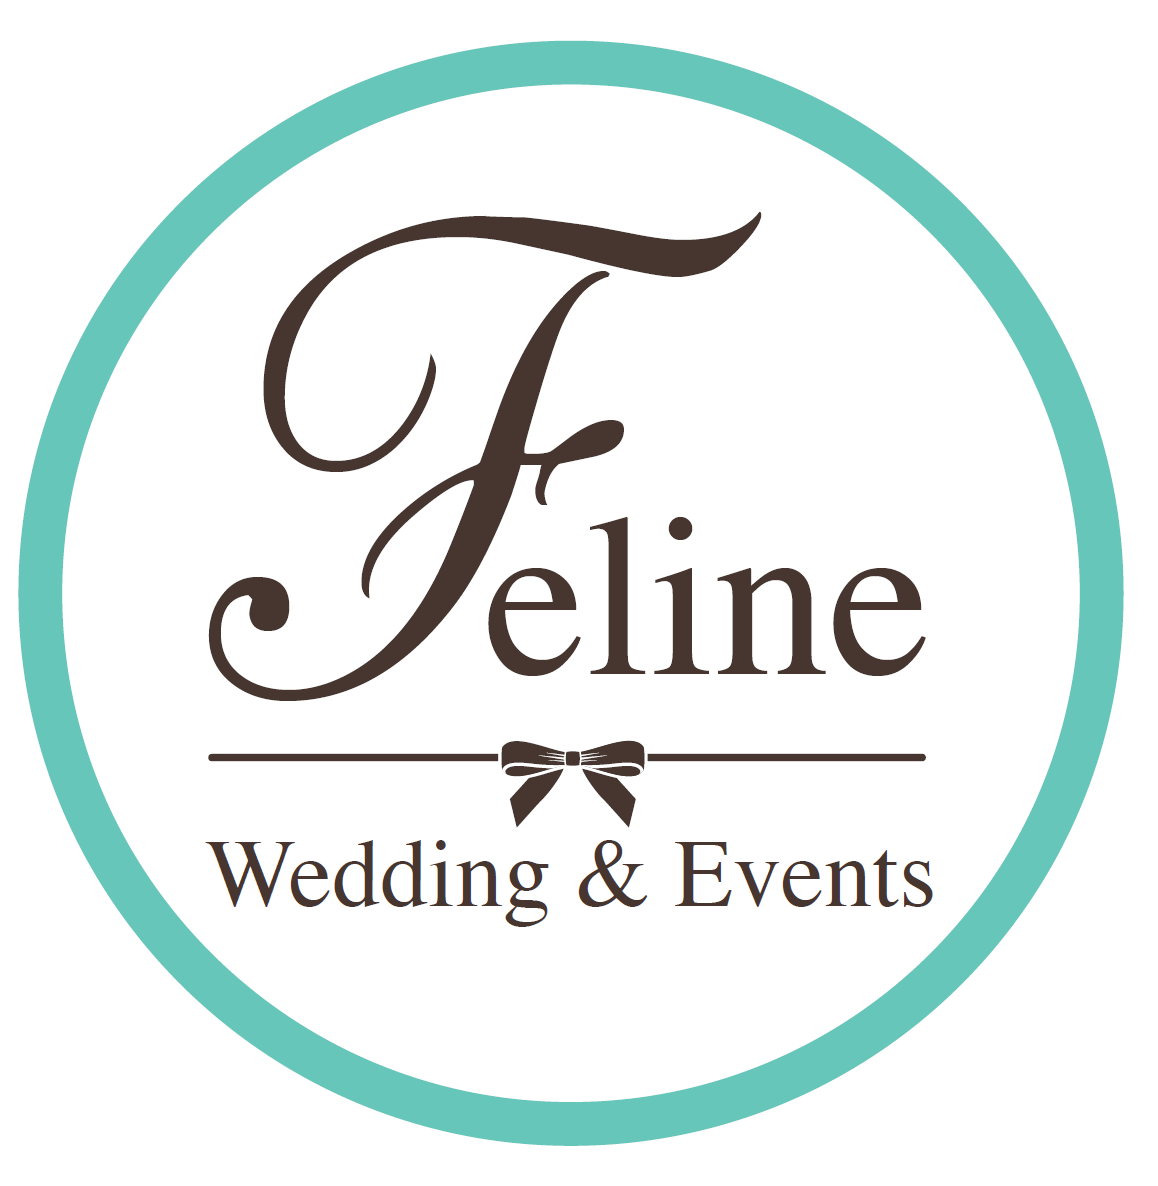 Dorpsstraat 39 4145 KB Schoonrewoerd info@felineweddings.